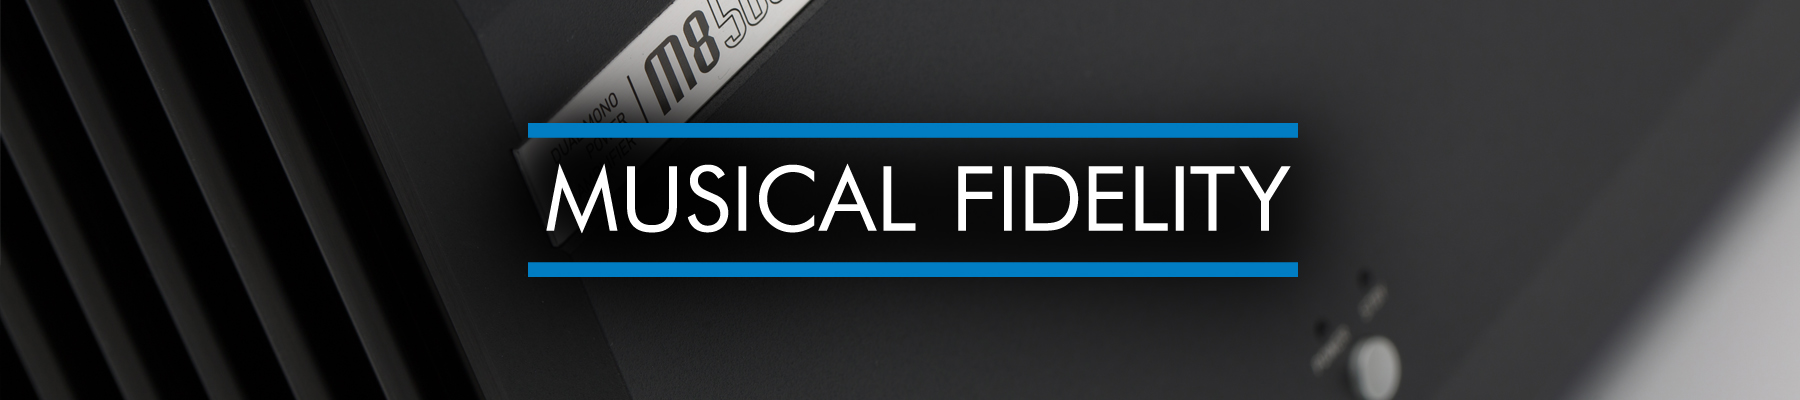 Musical Fidelity Available Exclusively In The Uk Through Henley Audio